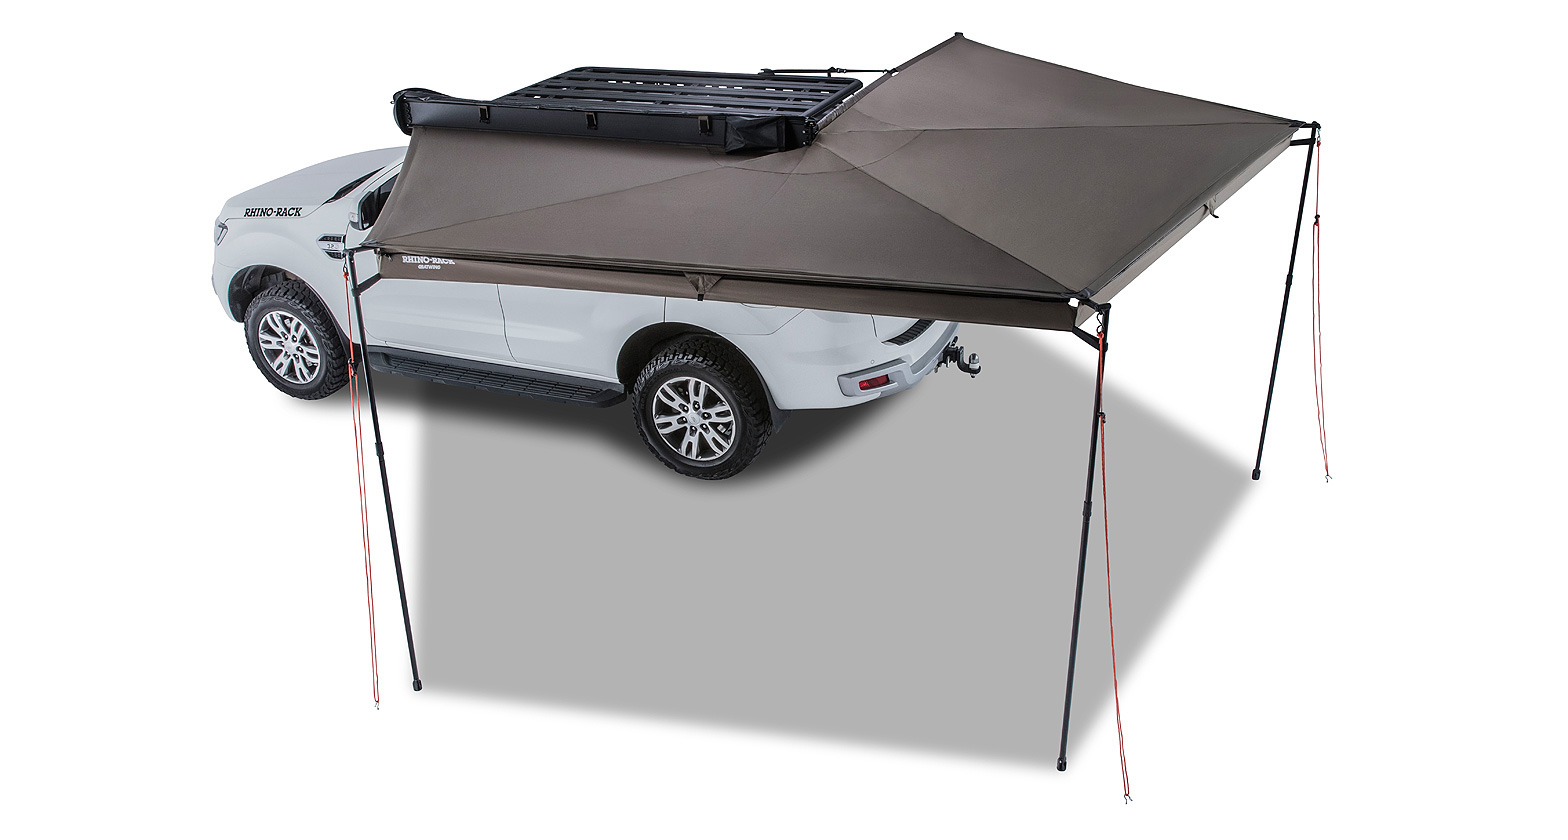 Batwing Awning (Left)